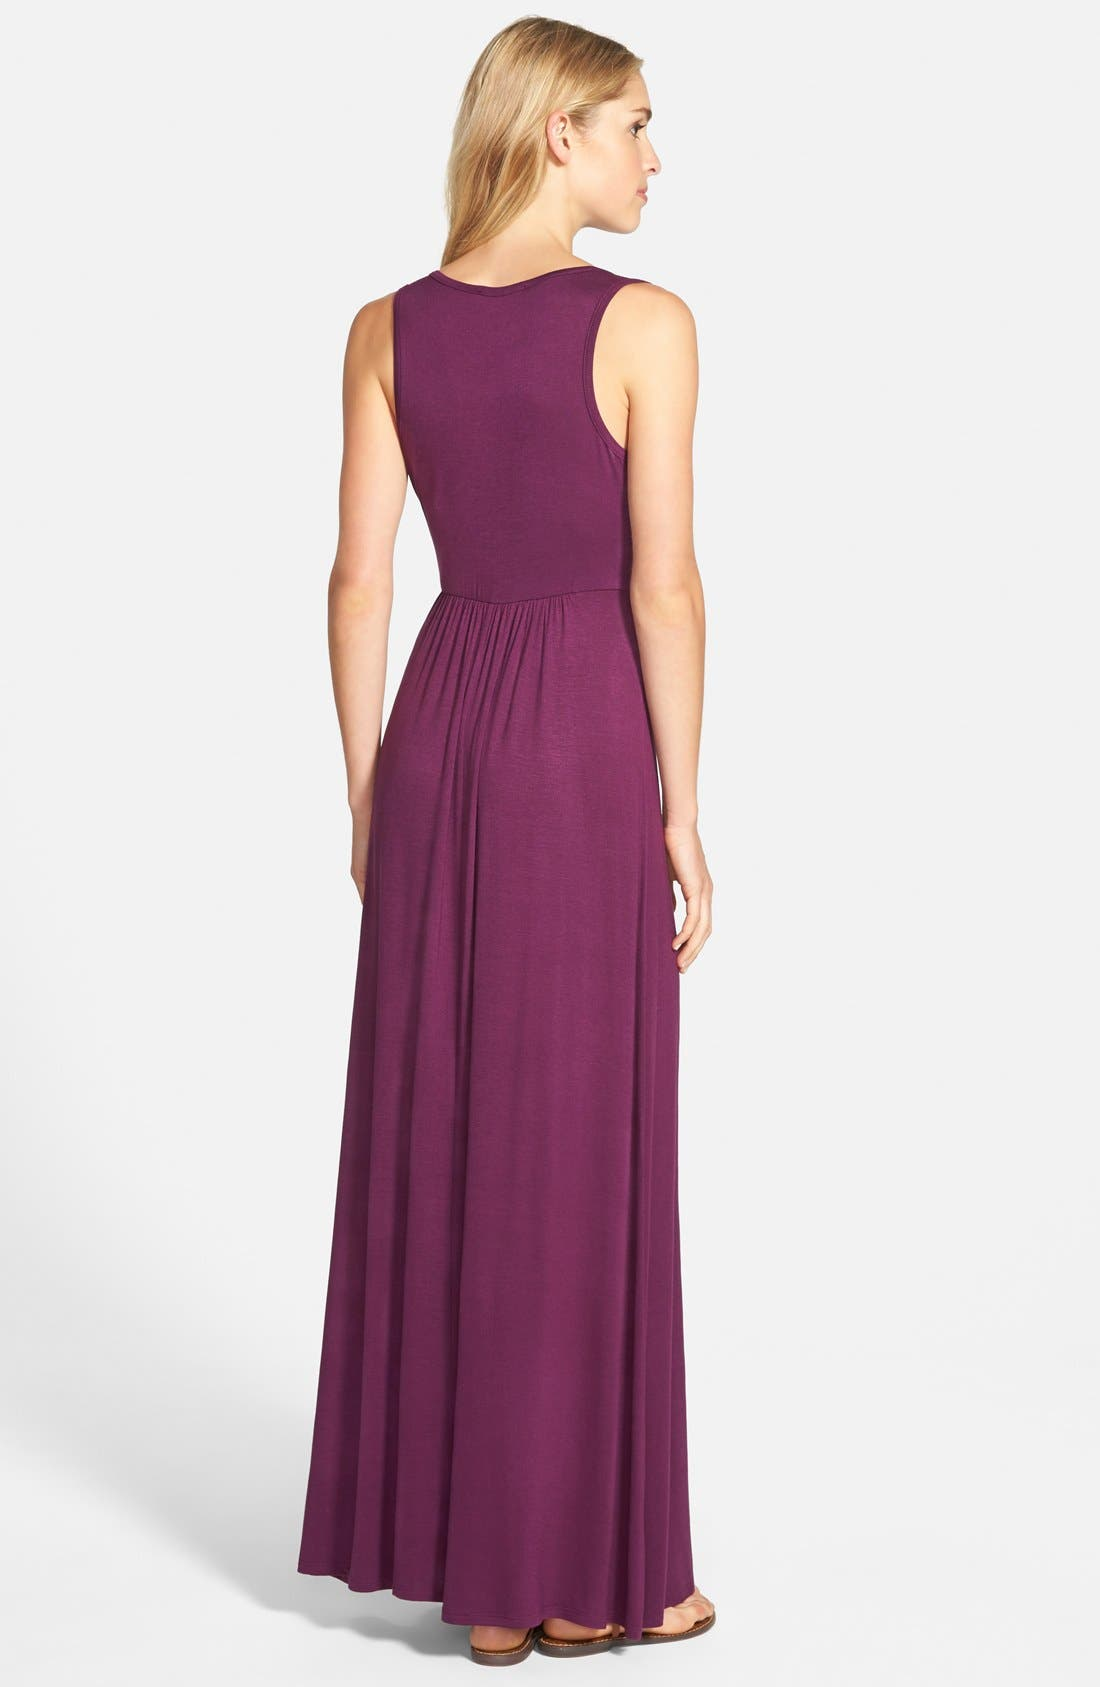 V-Neck Jersey Maxi Dress,                             Alternate thumbnail 8, color,                             PURPLE DARK